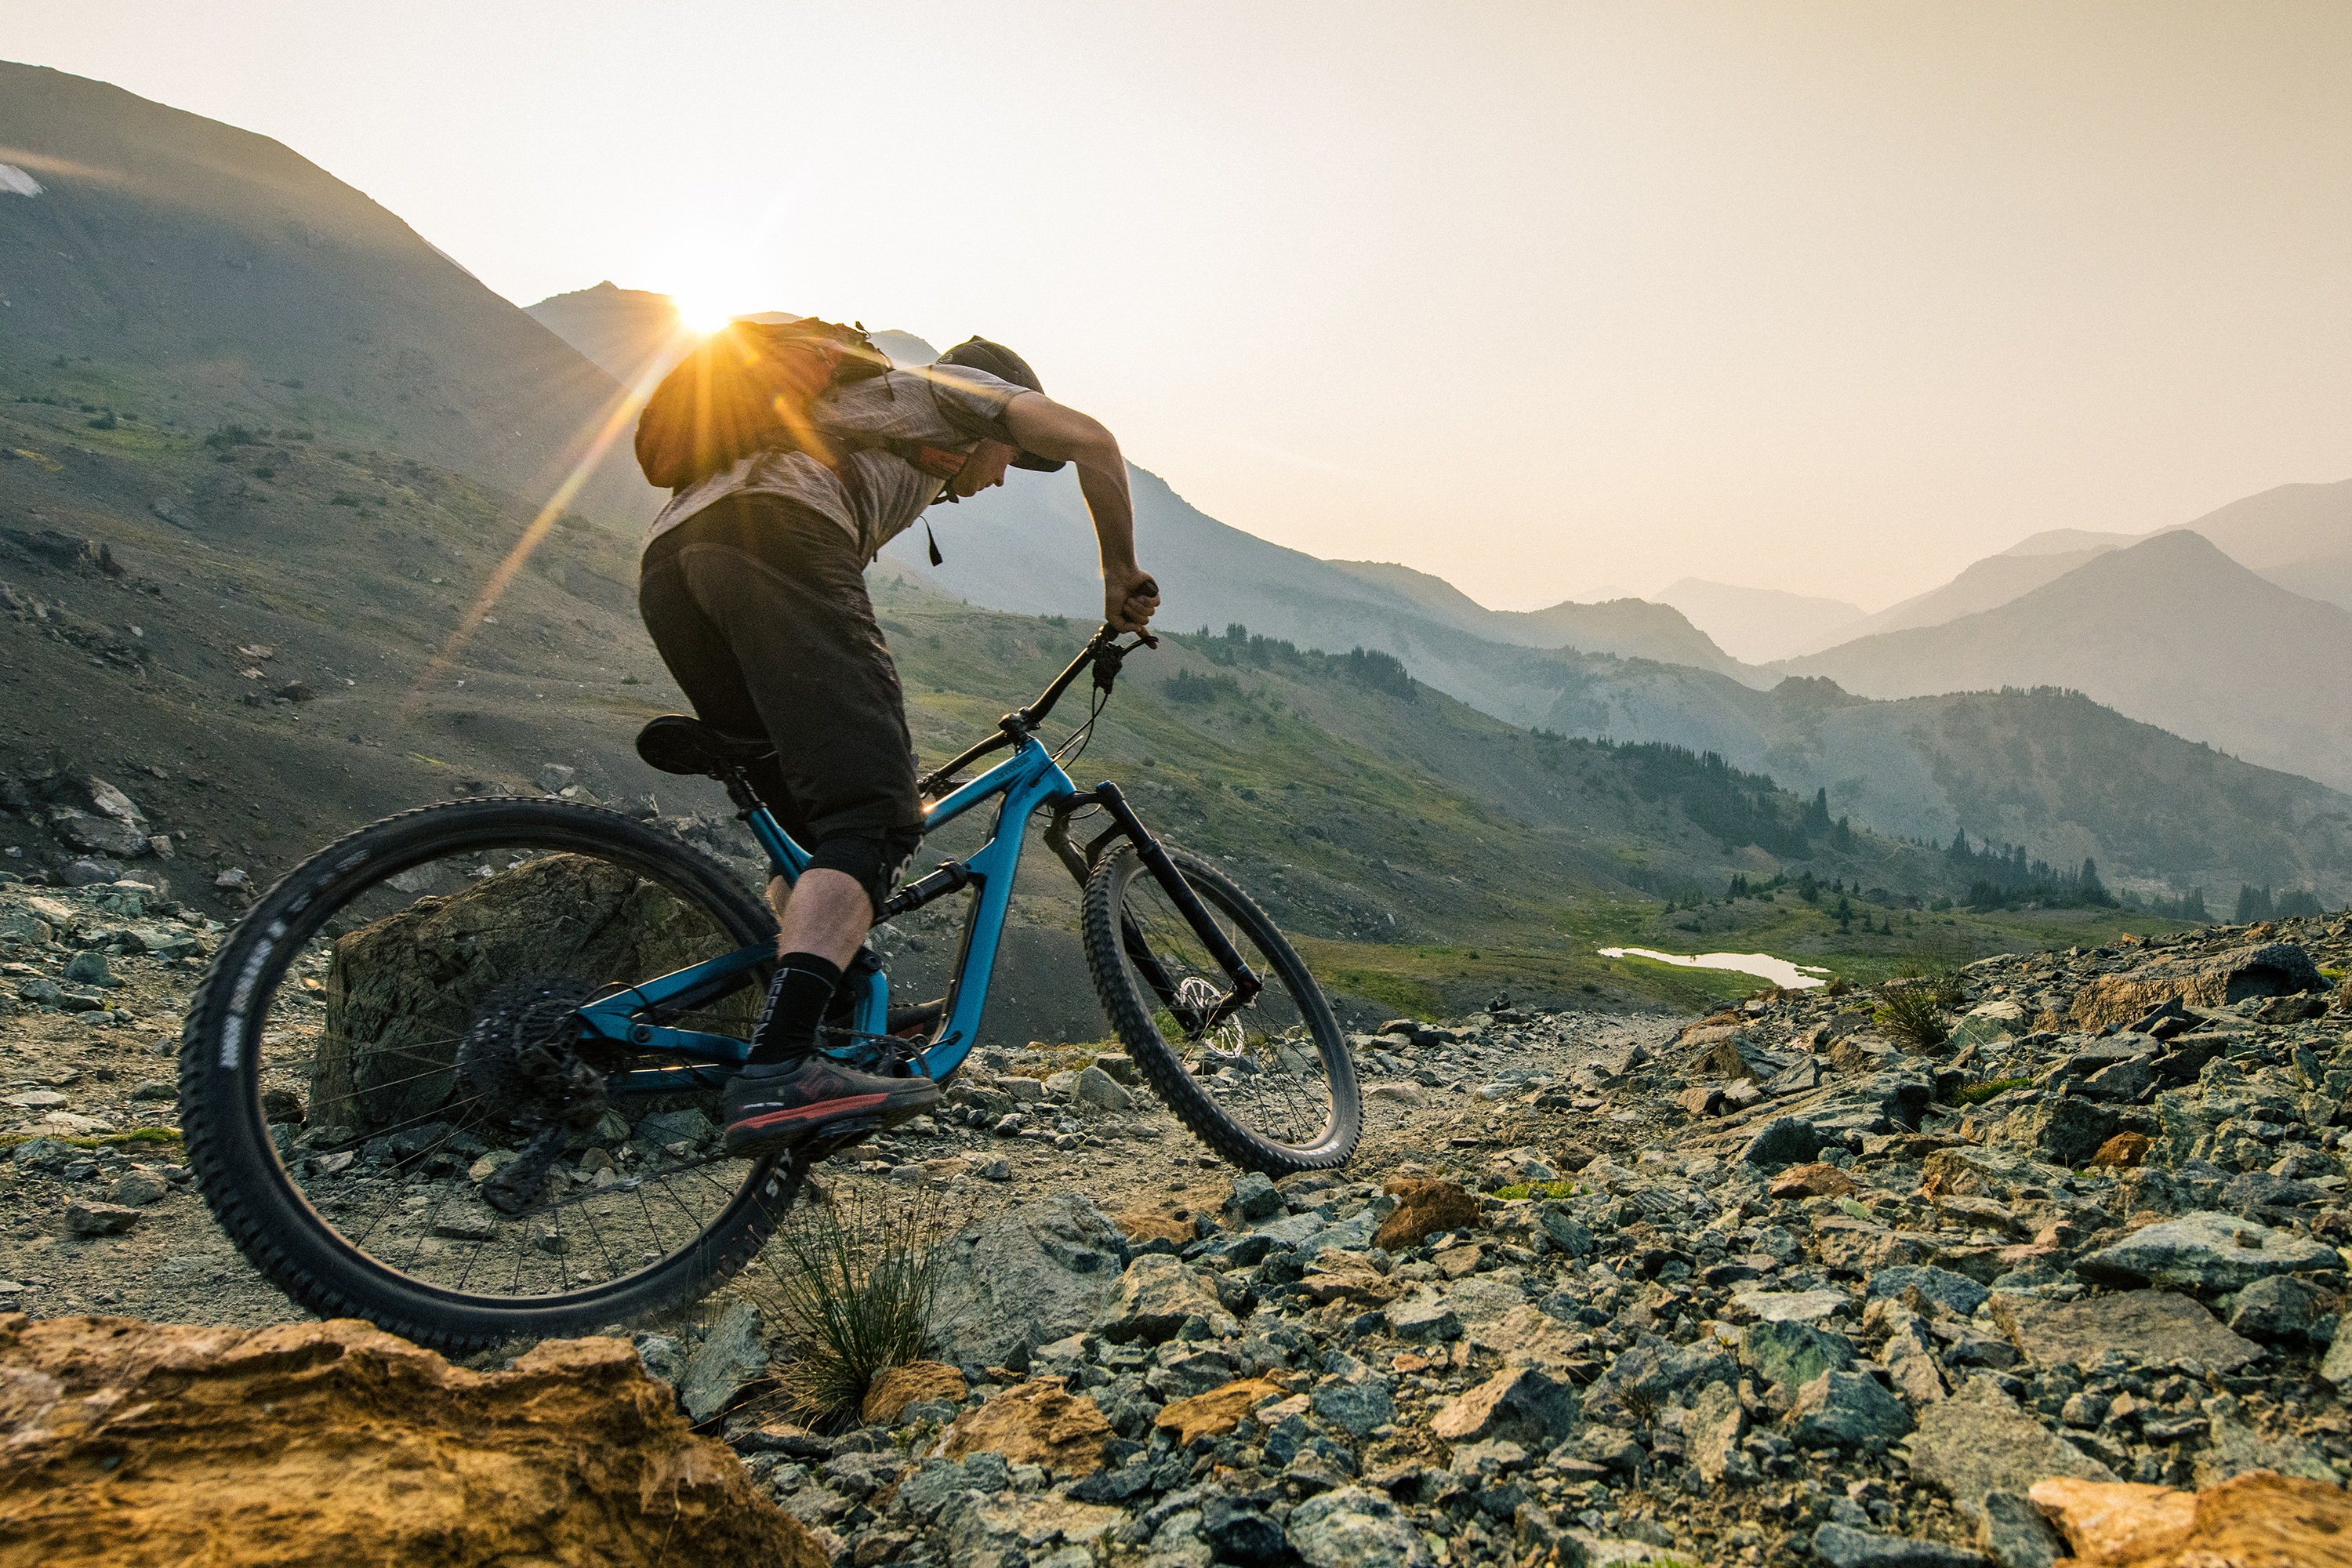 d050b45e2a6 Small to XL: Cannondale Aims for Same Ride With 'Habit' Line ...